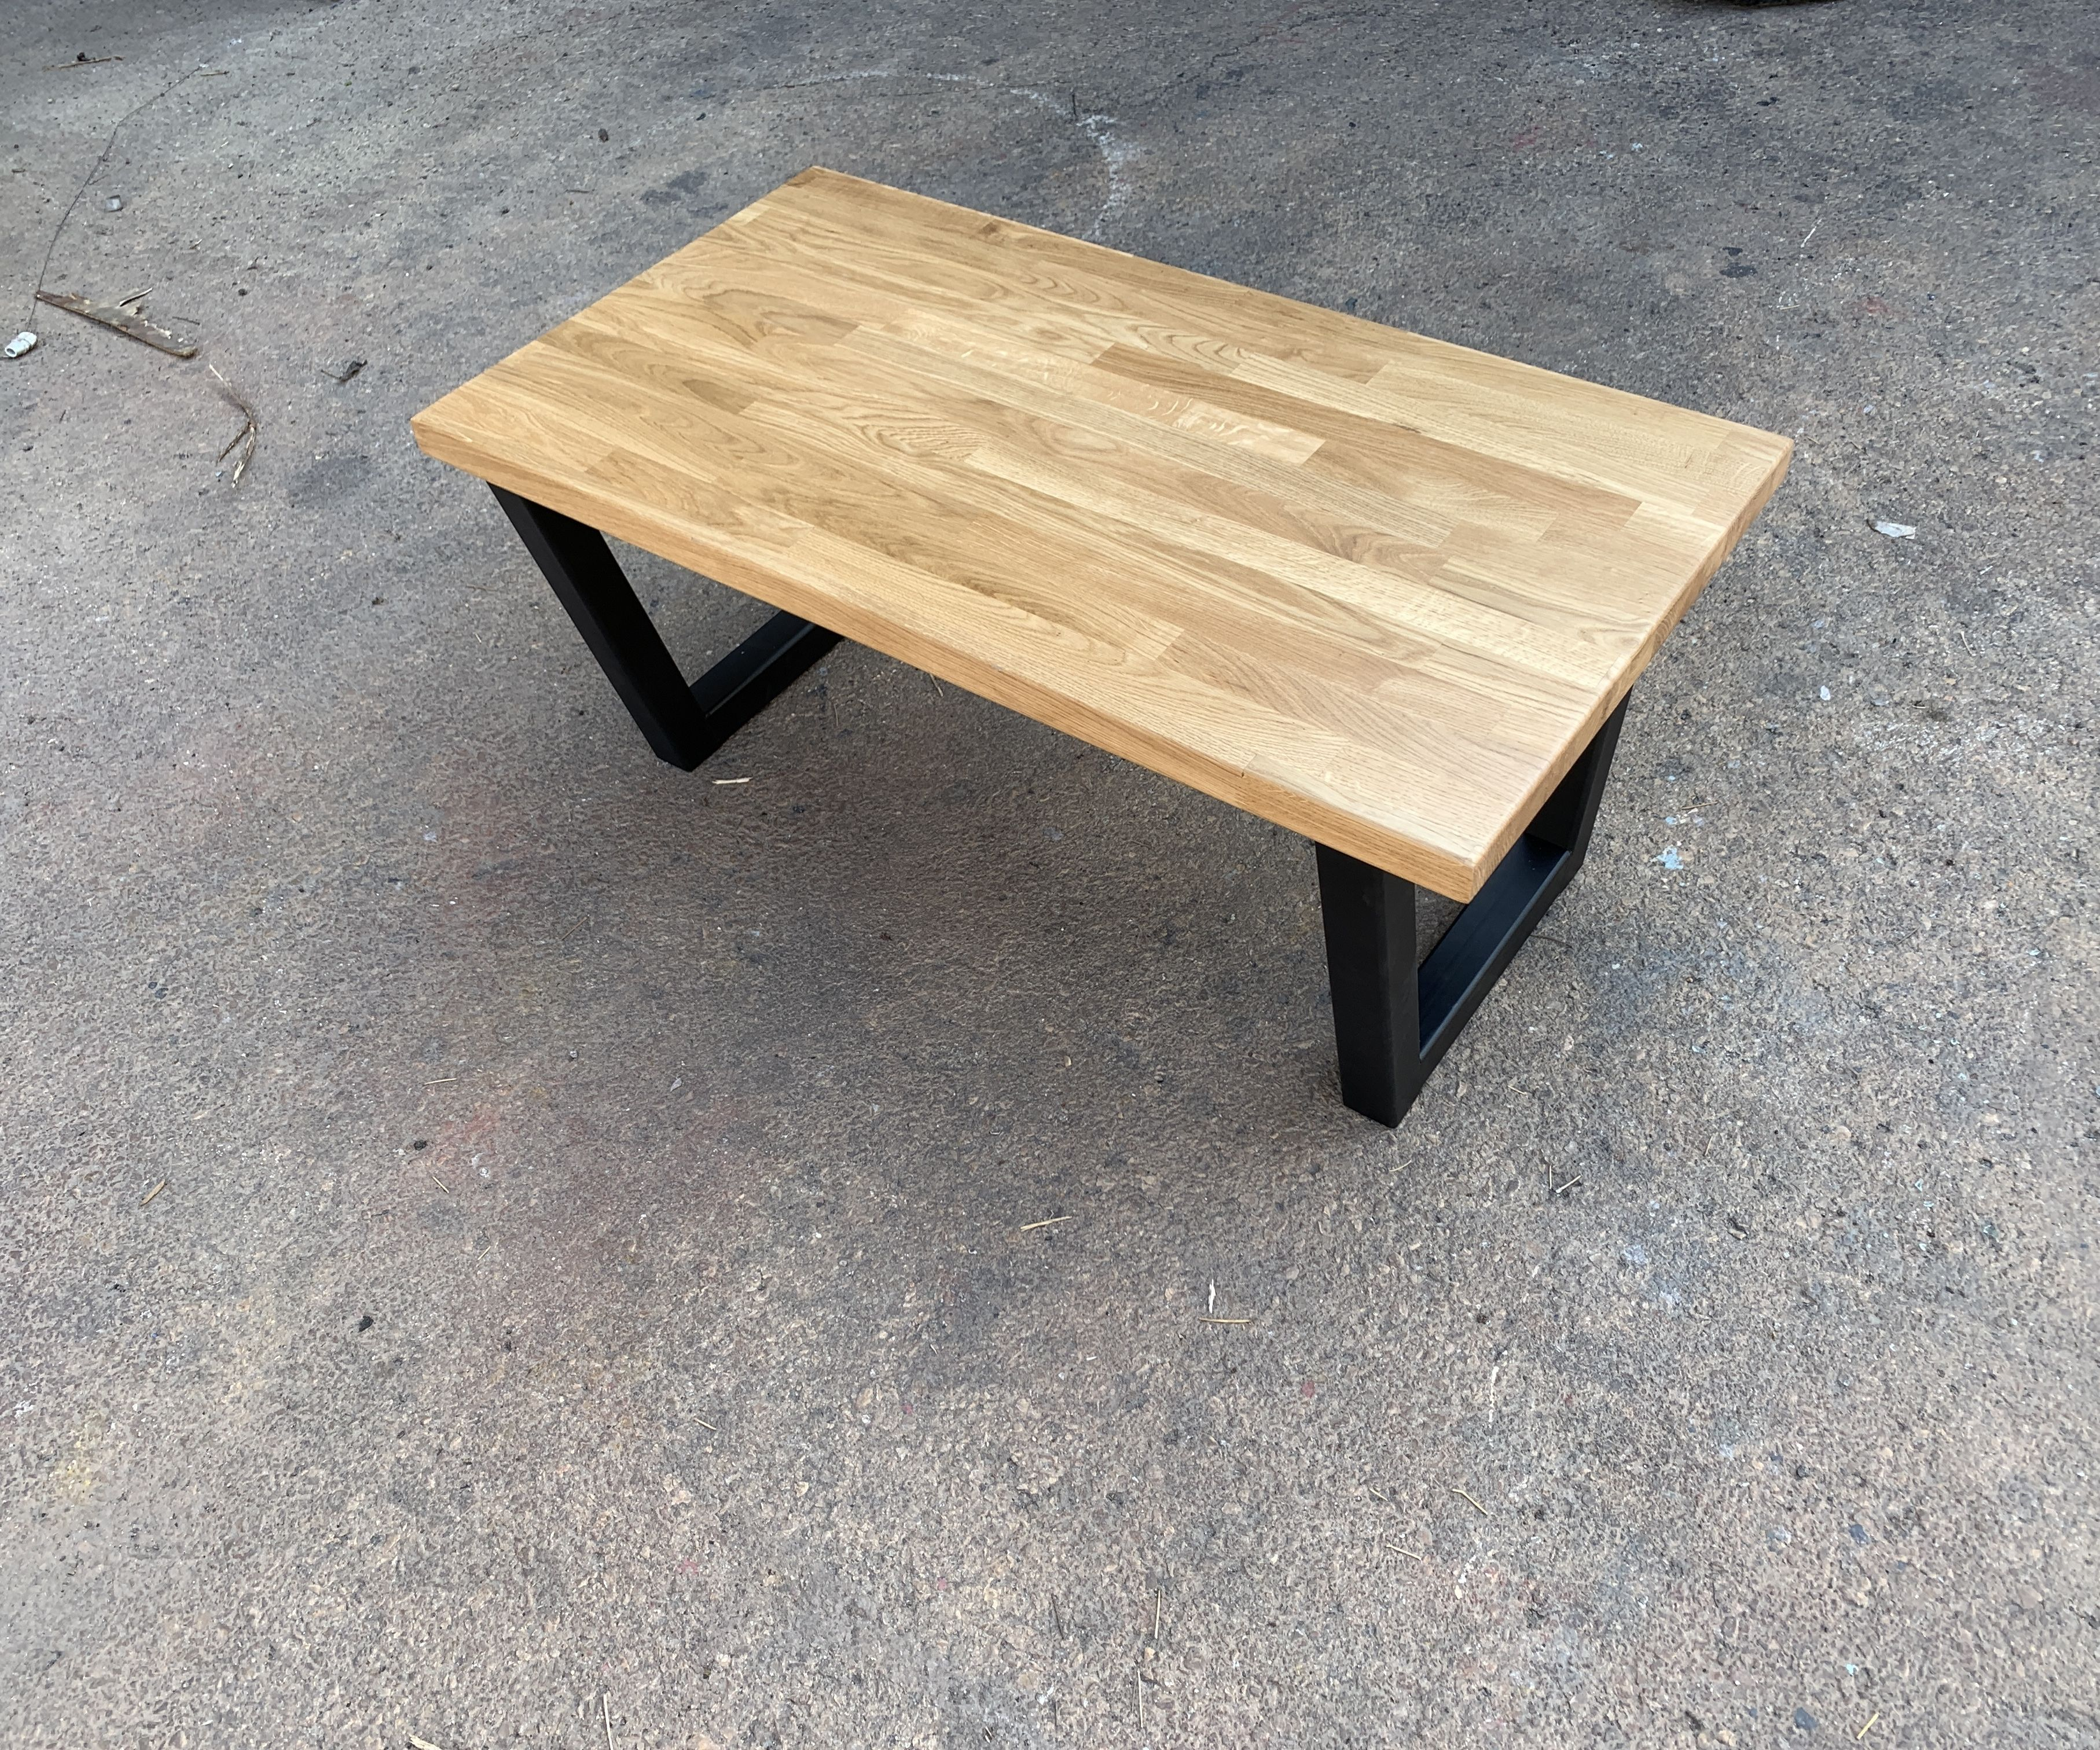 How to Build a Beautiful Wood Coffee Table